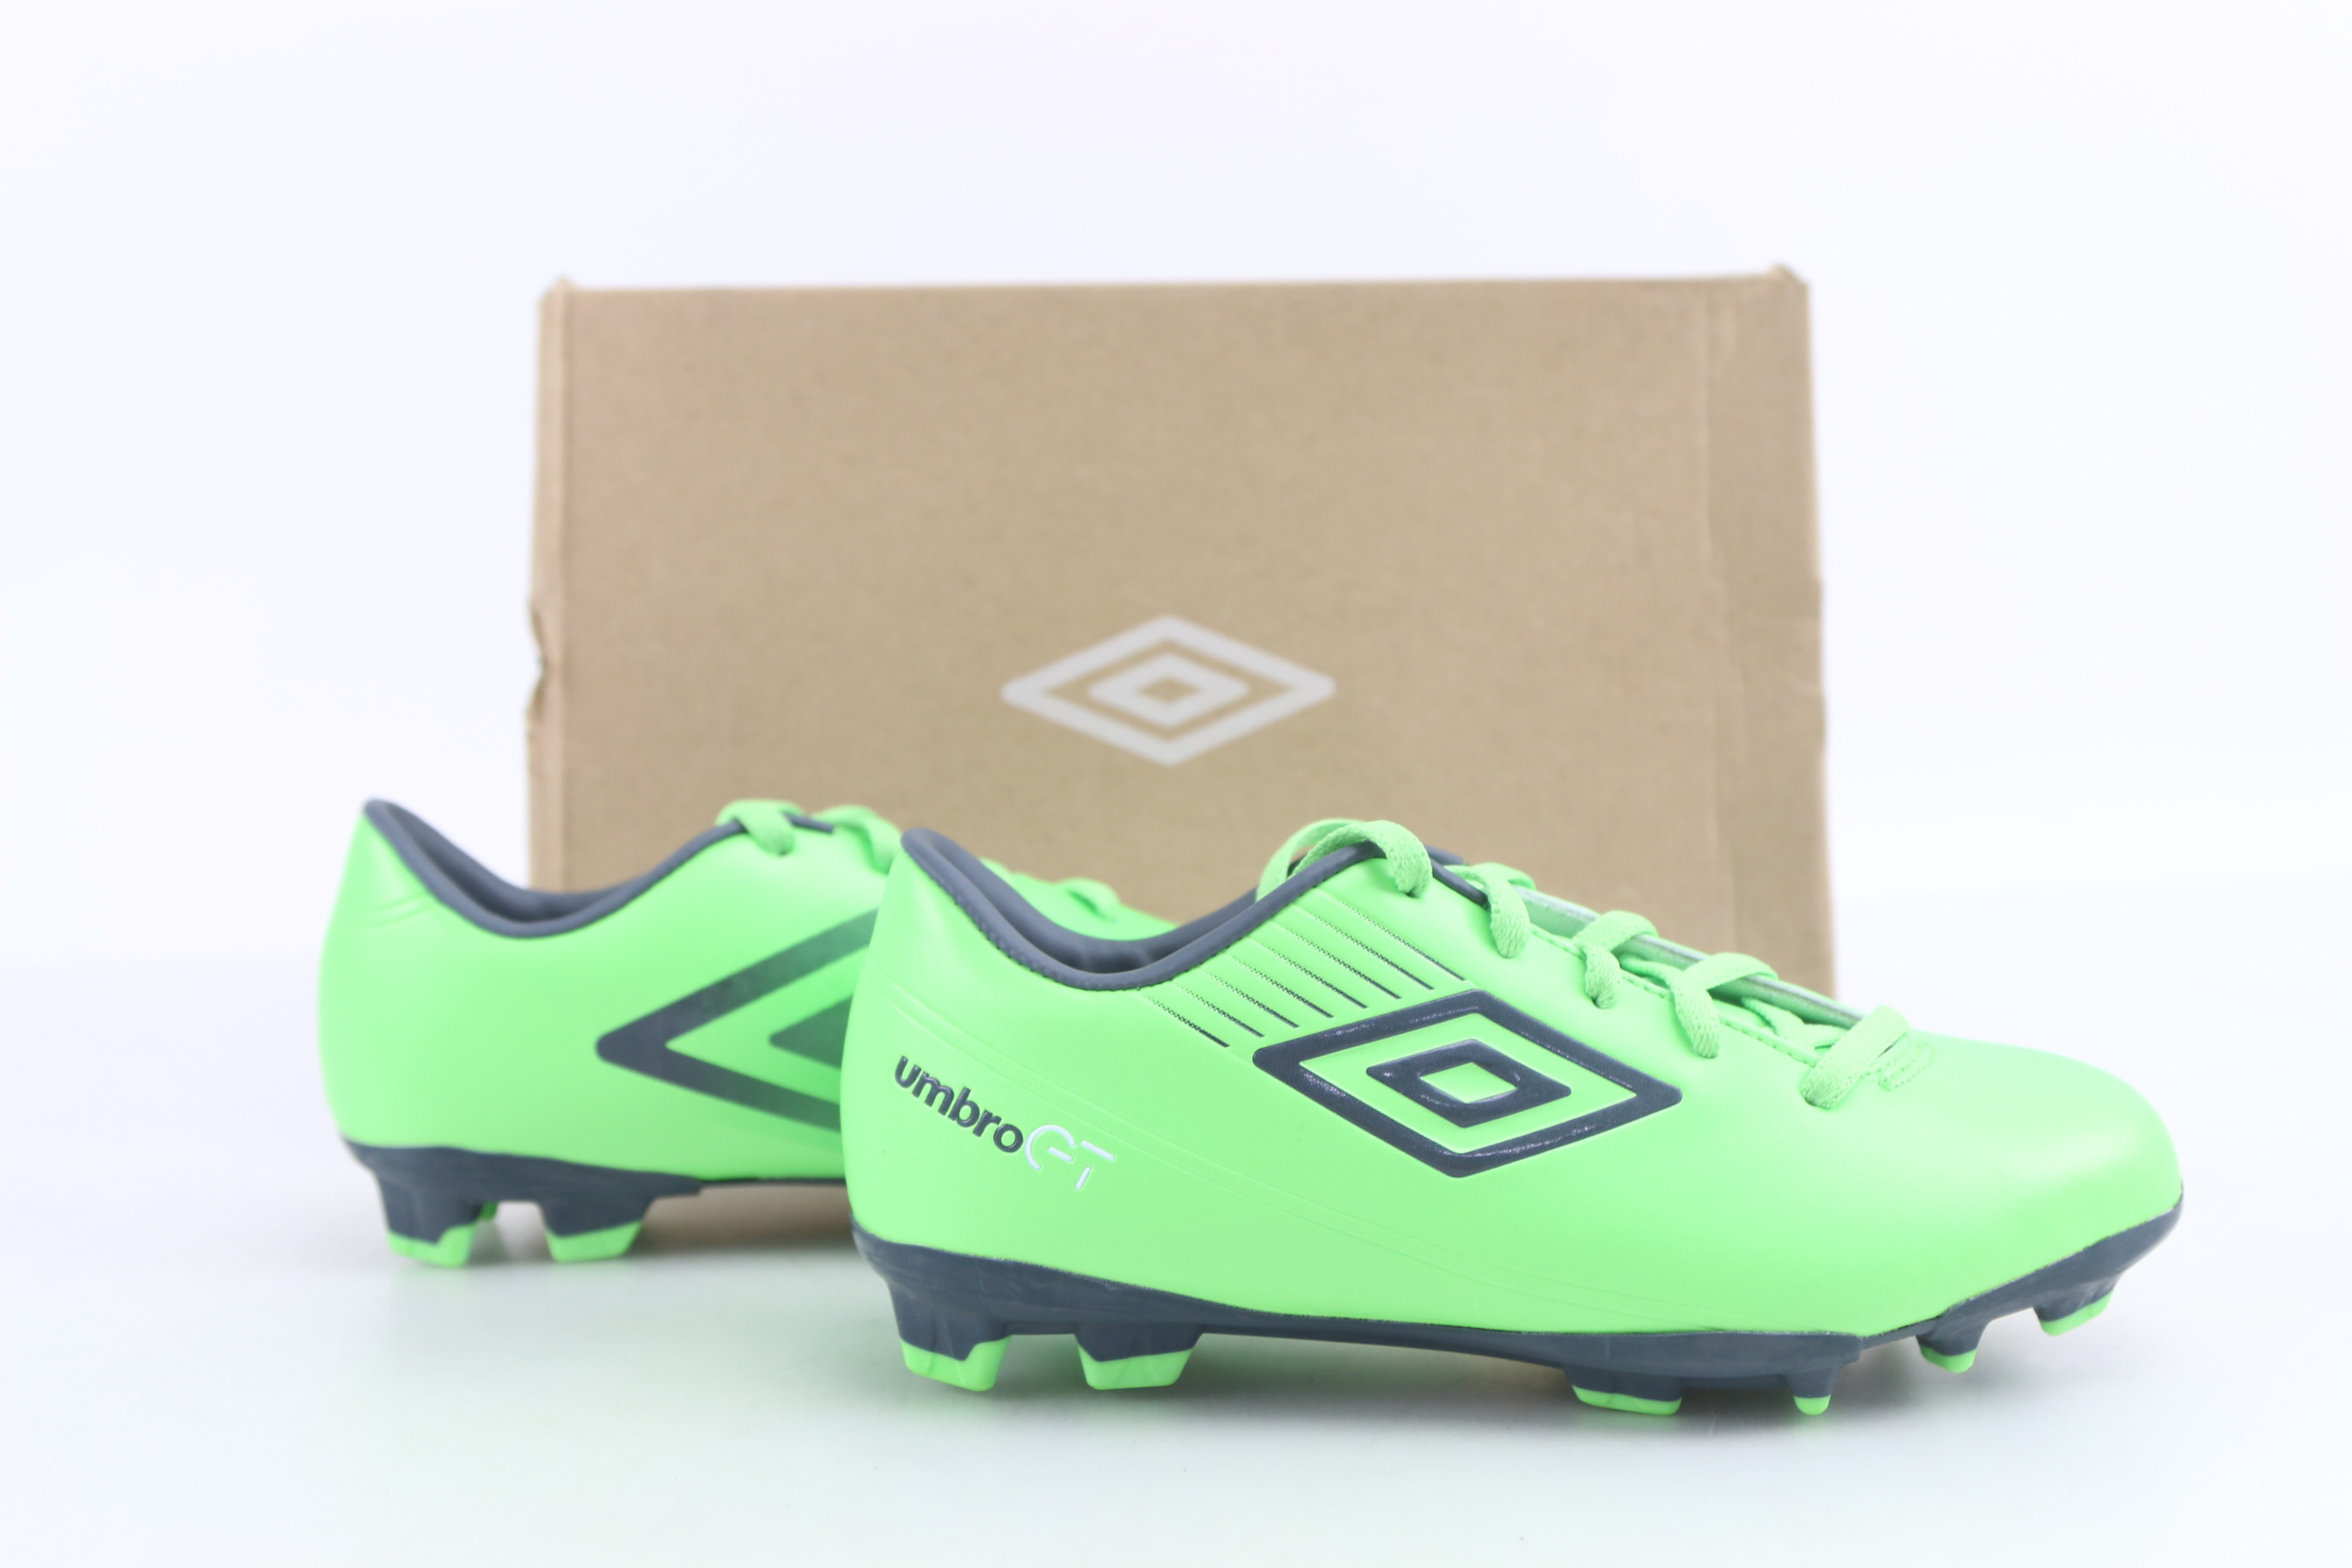 d6869c9a261 Details about Umbro Football Boots Shoes Umbro GT II Cup J Size 2.5 Green  80397U-CU2